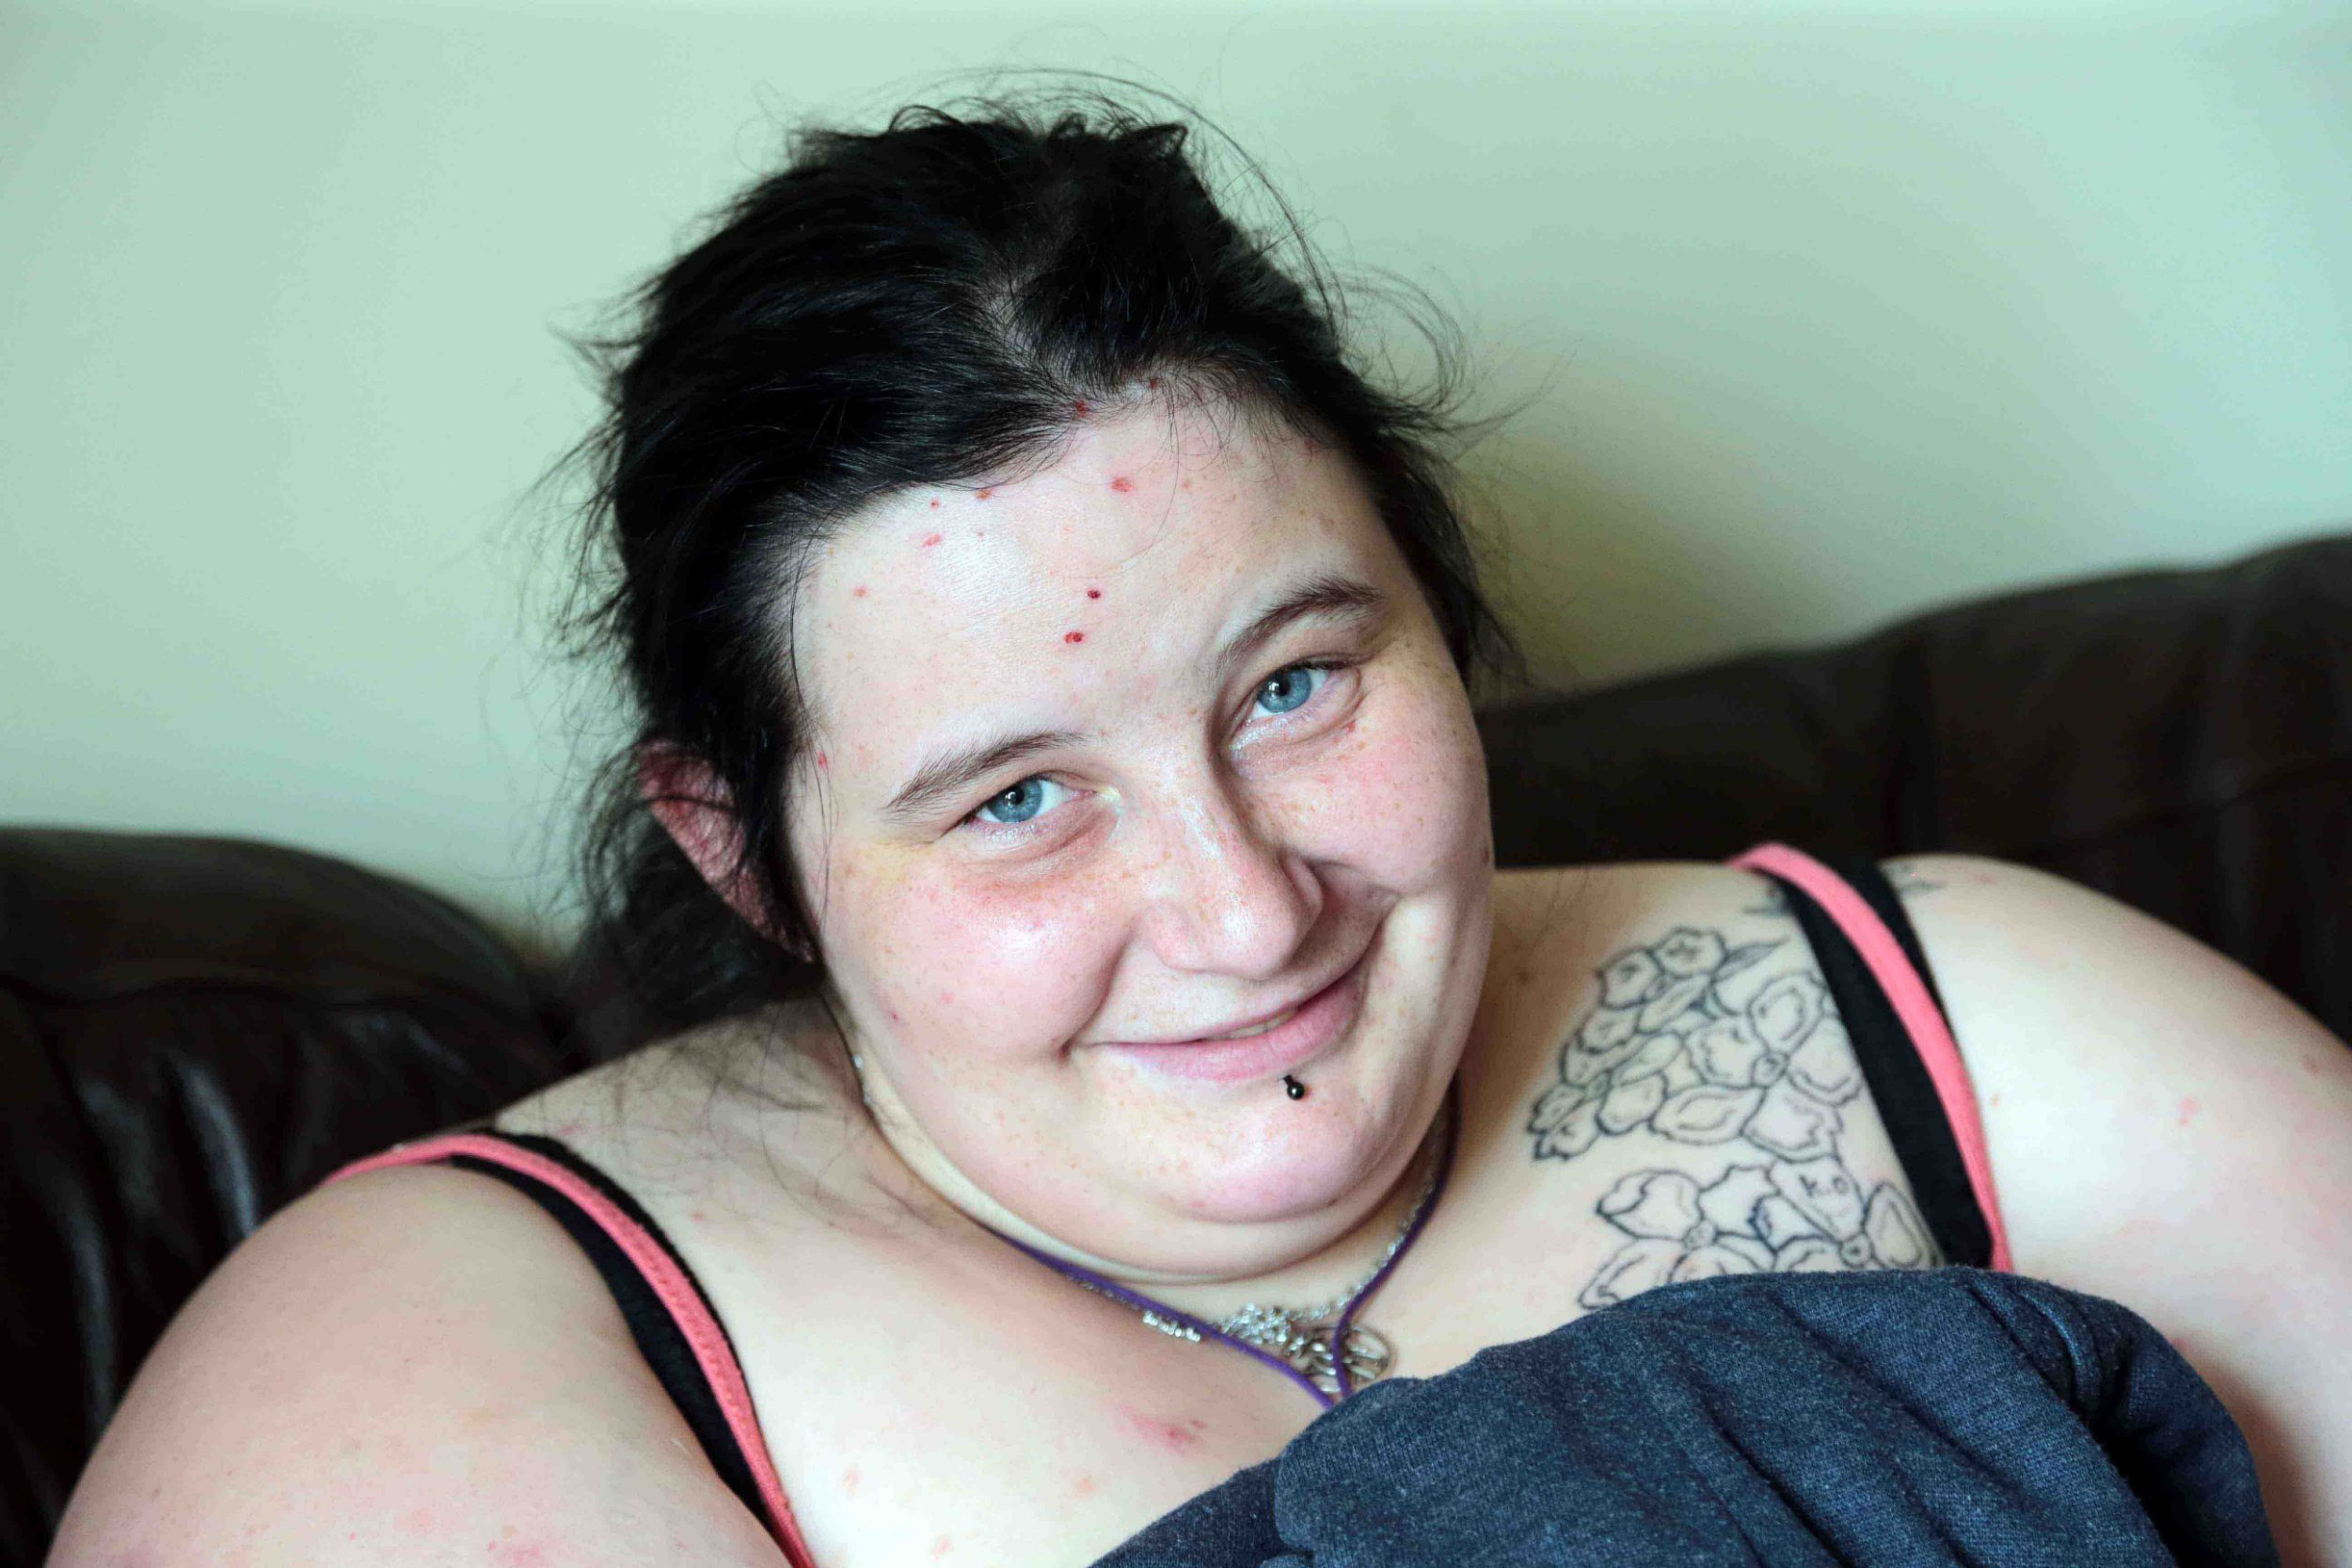 Rhiannon Scott from Bryn Teg, Wrexham. Showing her bruises, was rescued by emergency services from a submerged tent whilst camping in Waunfawr near Caernarfon in the early hours of last Tuesday. Showing a happy face that she ok after surviving her ordeal.